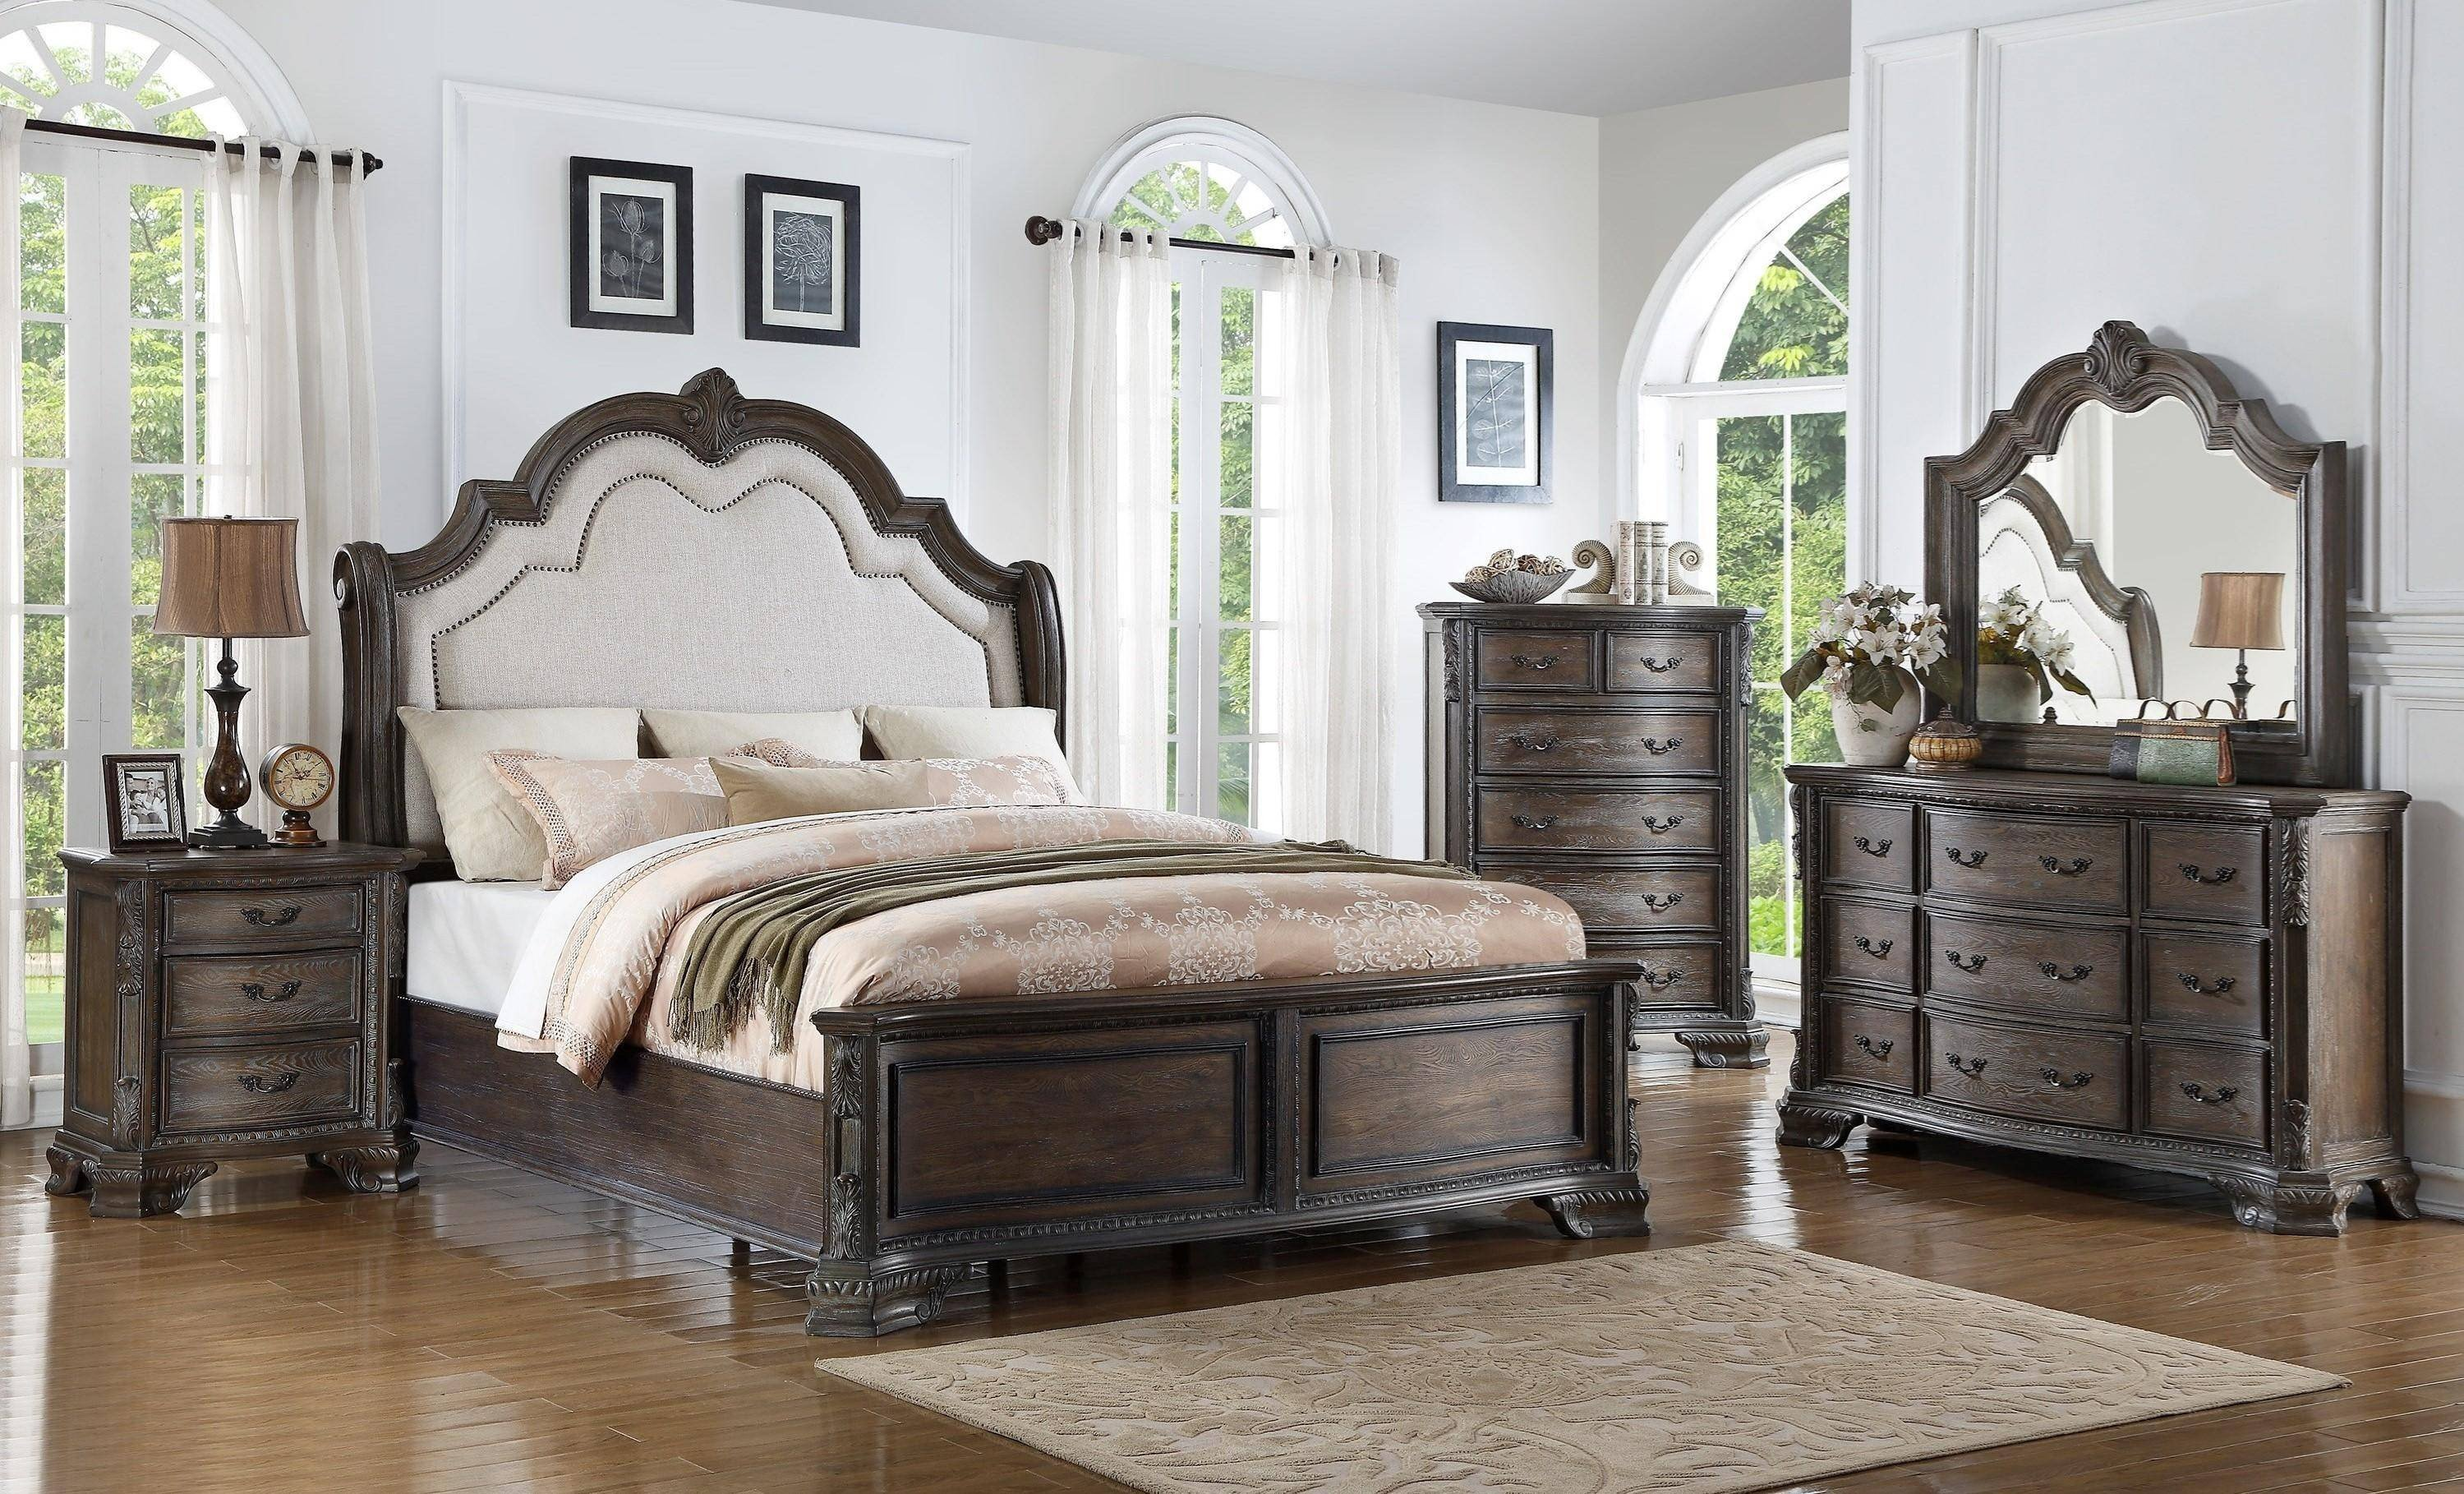 Tufted Headboard Bedroom Set Beautiful Crown Mark B1120 Sheffield Queen Panel Bed In Gray Fabric